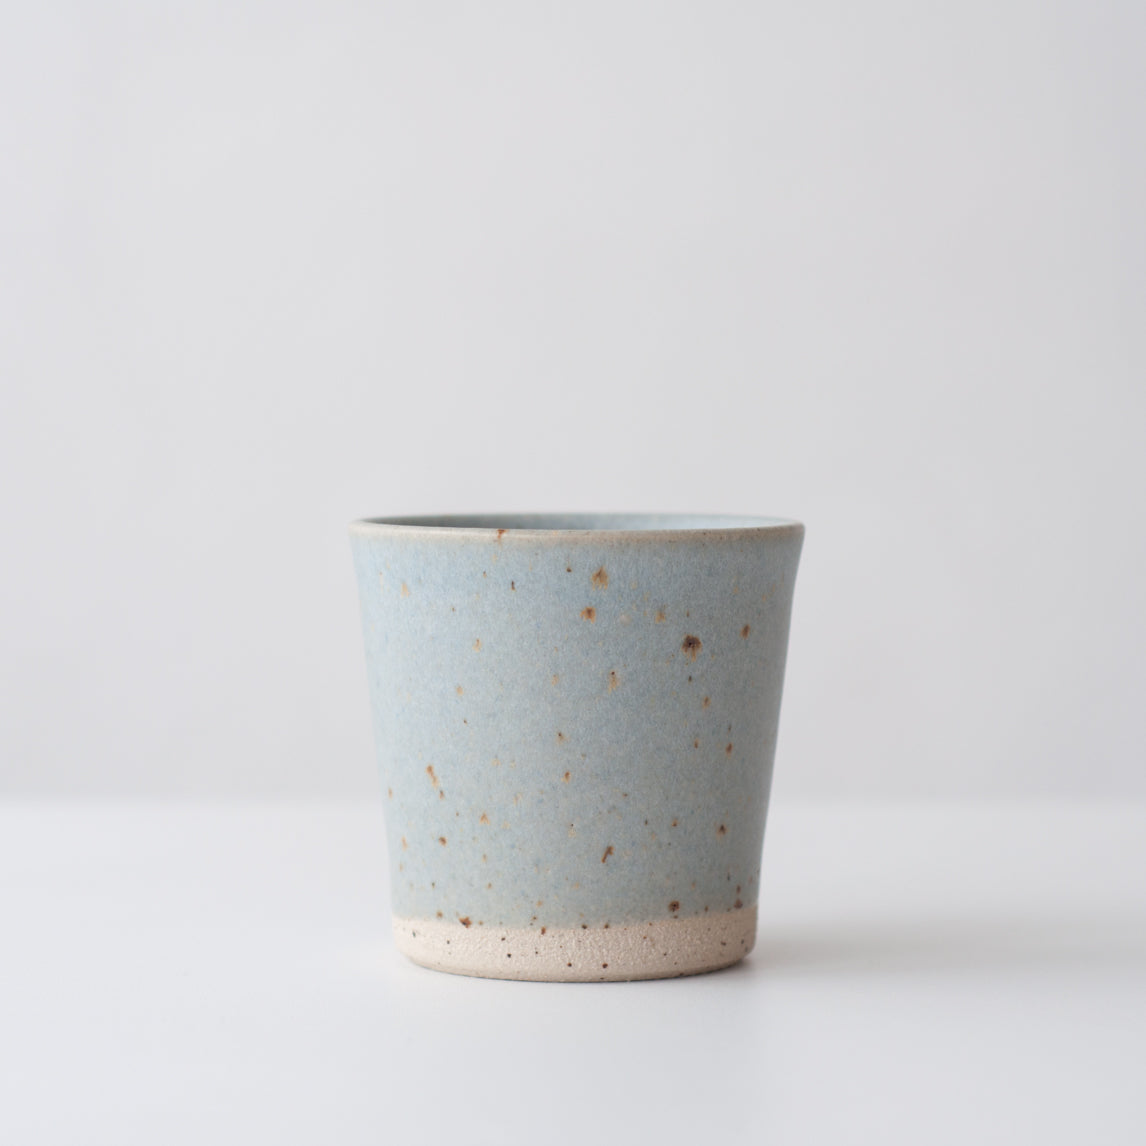 Beaker - Linen Blue & Speckled, Beaker - DOR & TAN | Contemporary Handmade Tableware